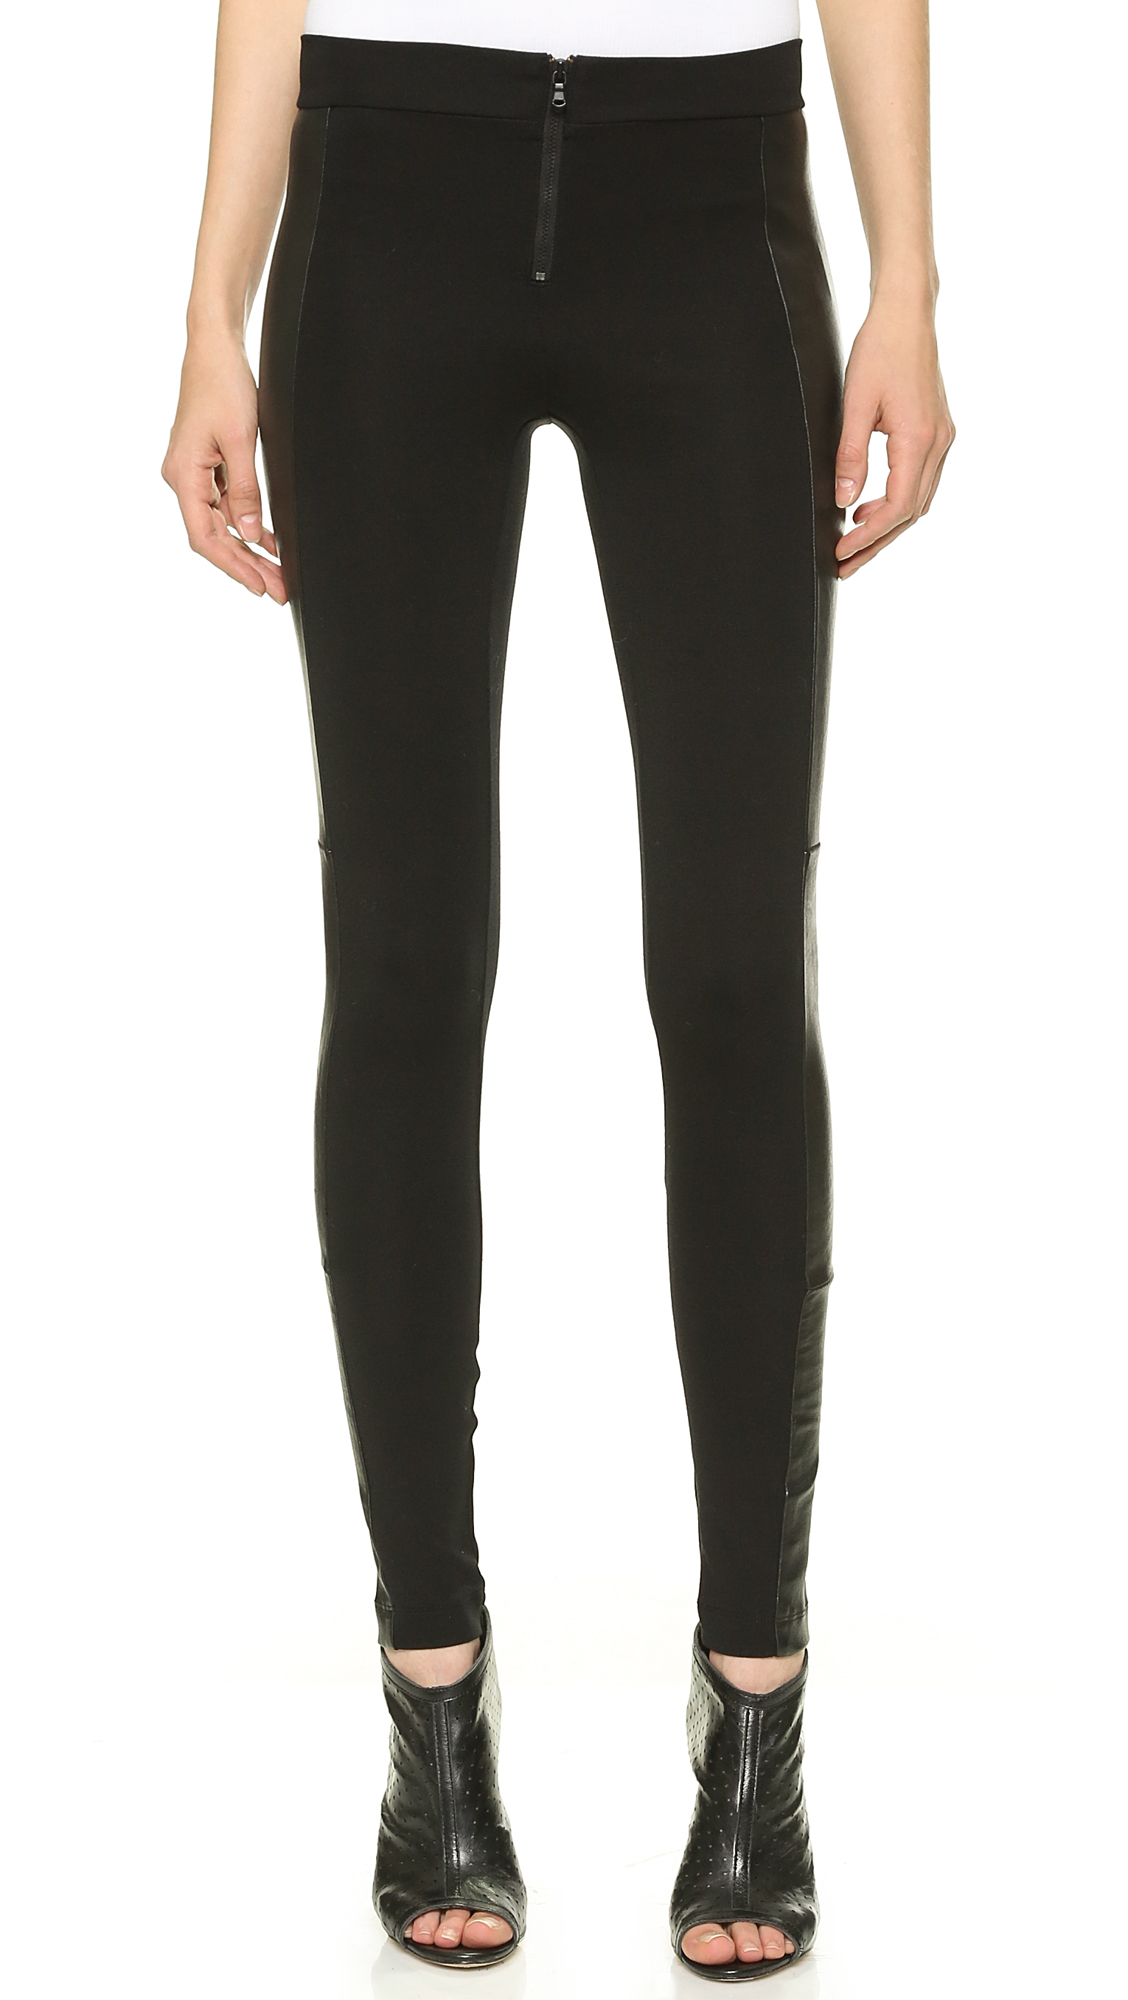 alice + olivia Front Zip Leggings with Leather Panels - Black